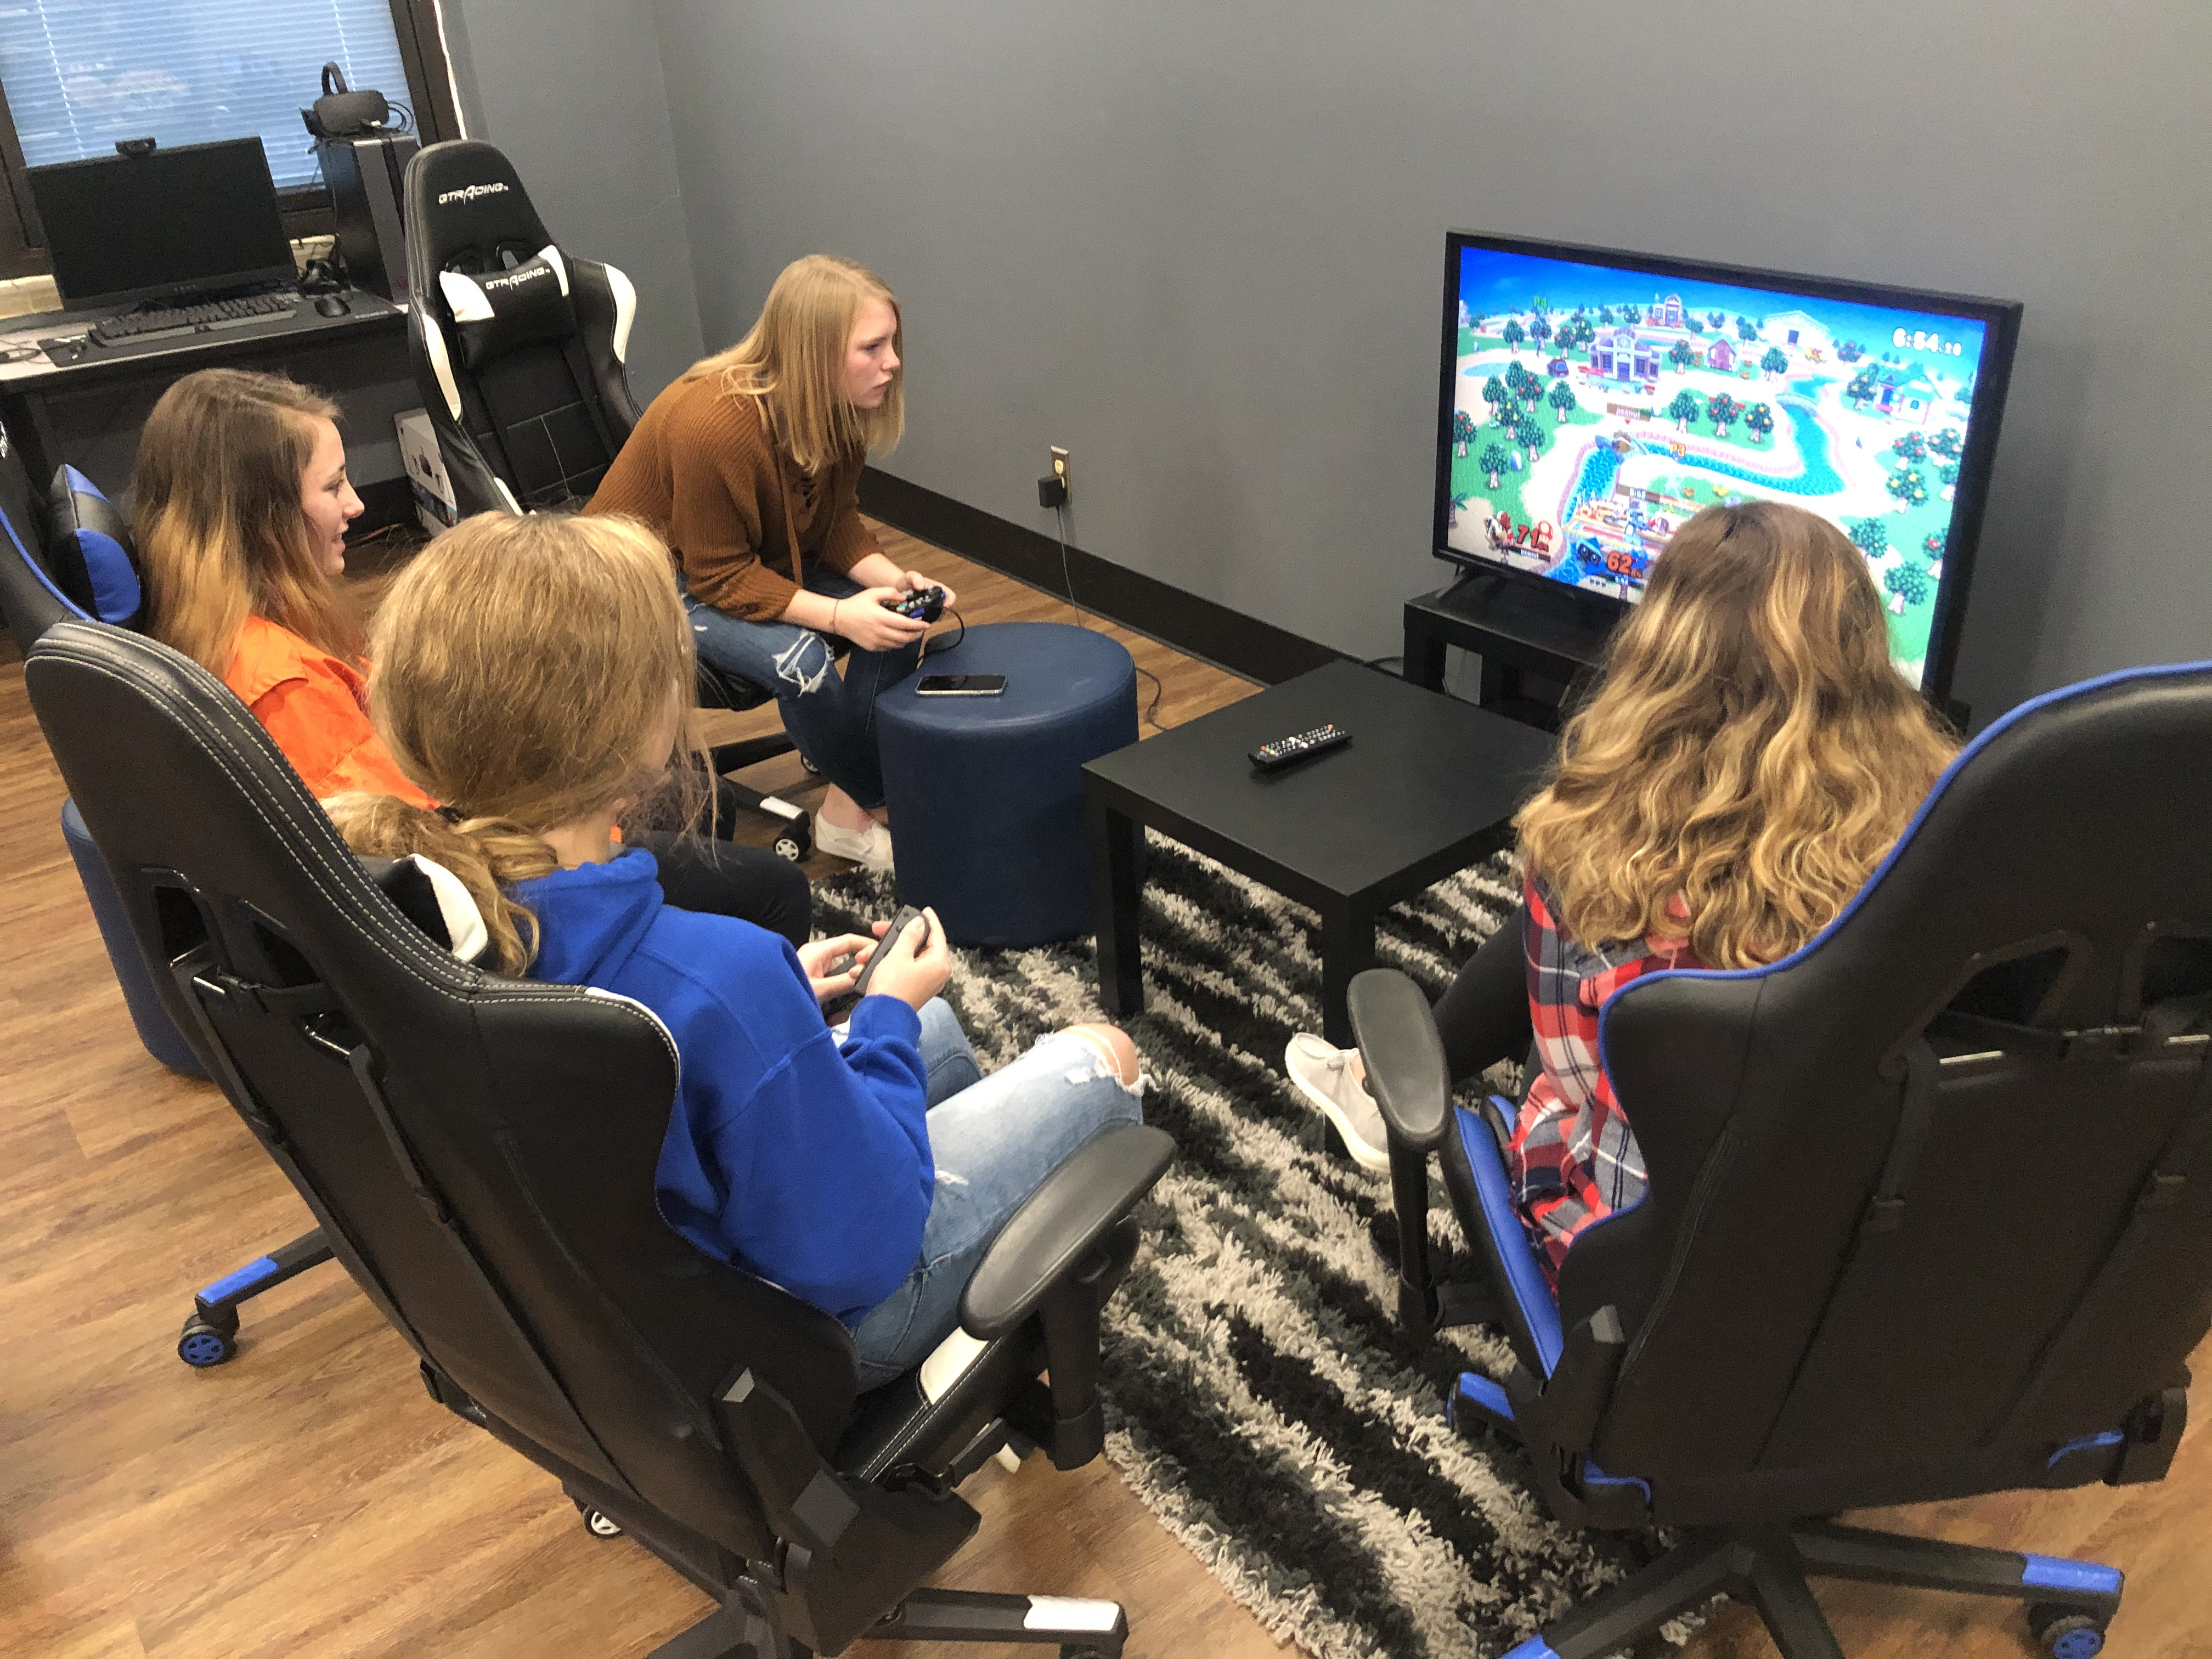 Video games in the classroom, along with an esports curriculum and a competitive team, are teaching students at Tipton High School in Indiana better gaming habits.